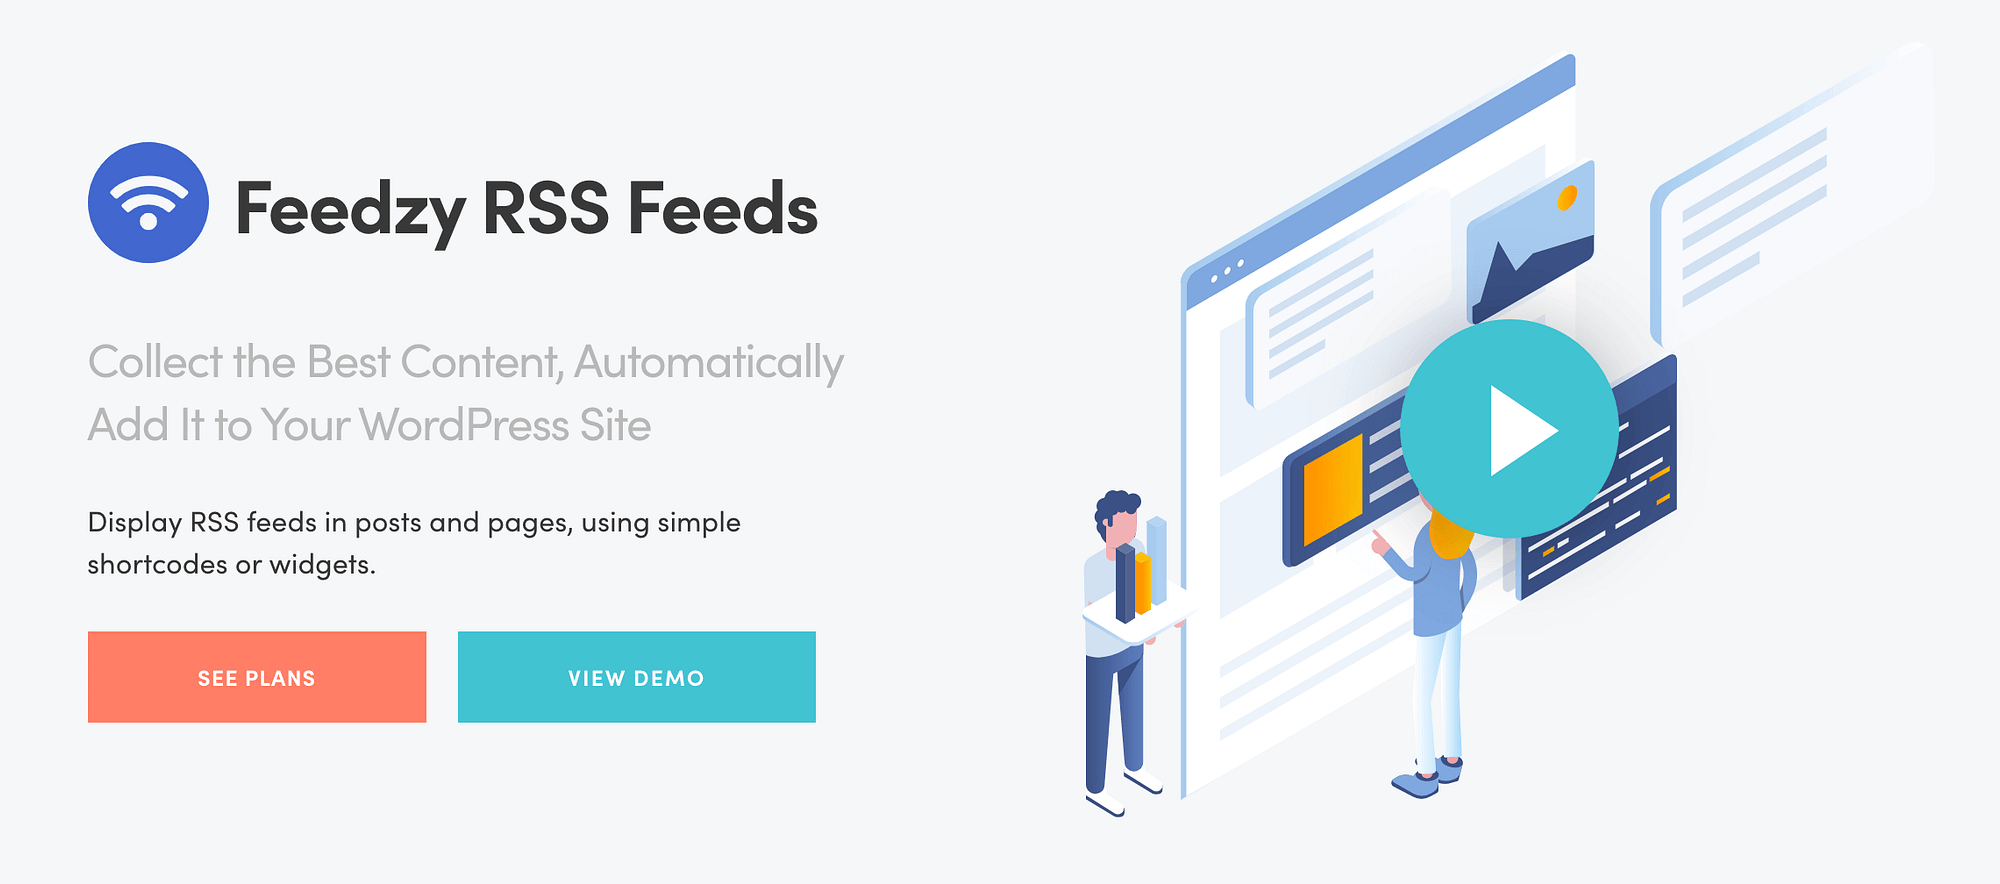 The Feedzy RSS Feed plugin can help you overcome writer's block